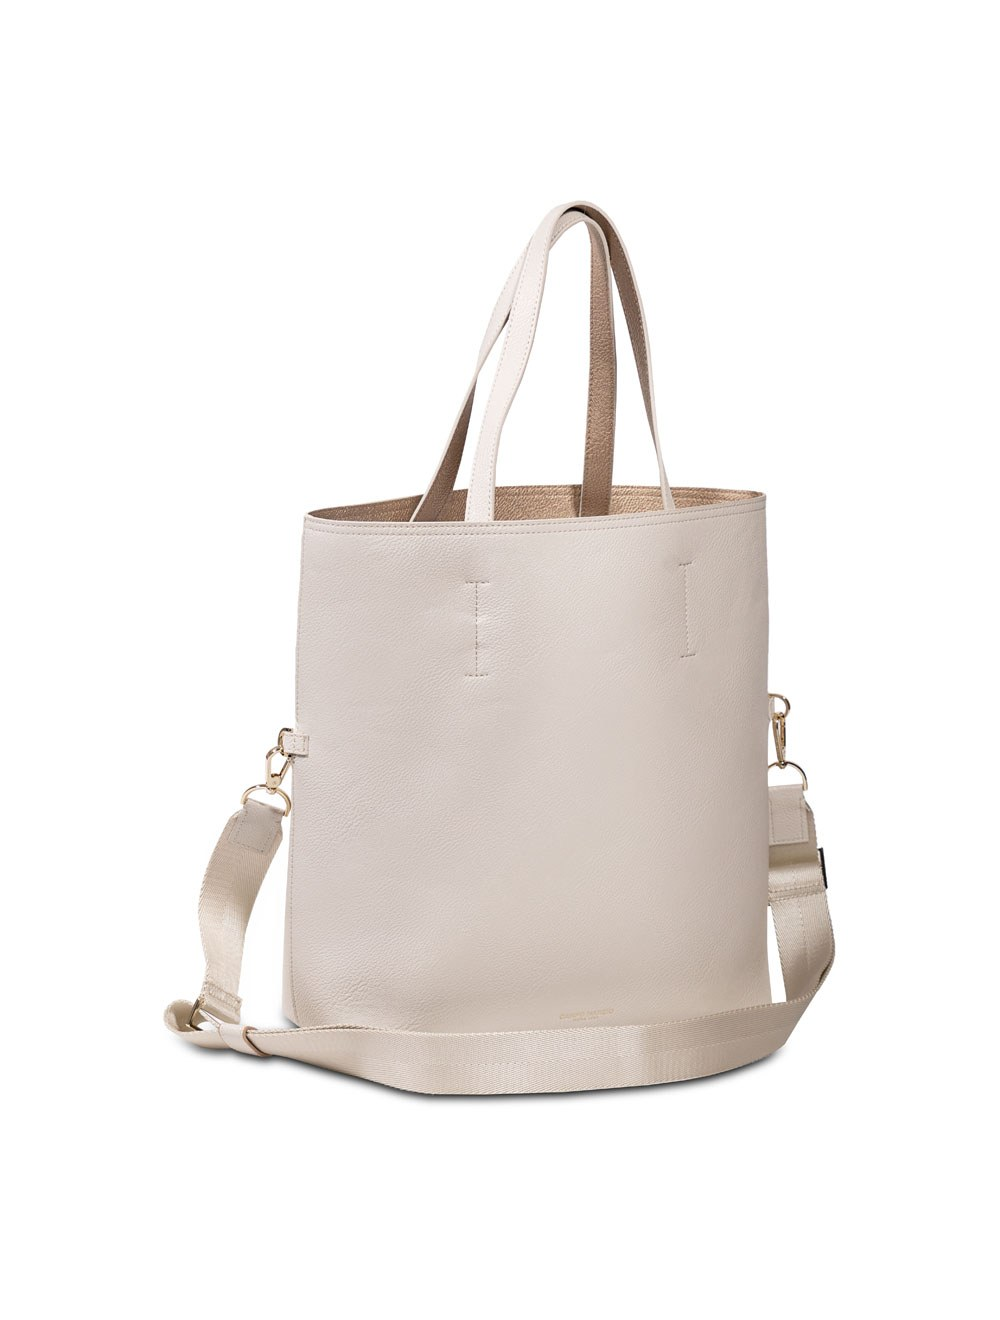 Reversible Tote Bag - Off White